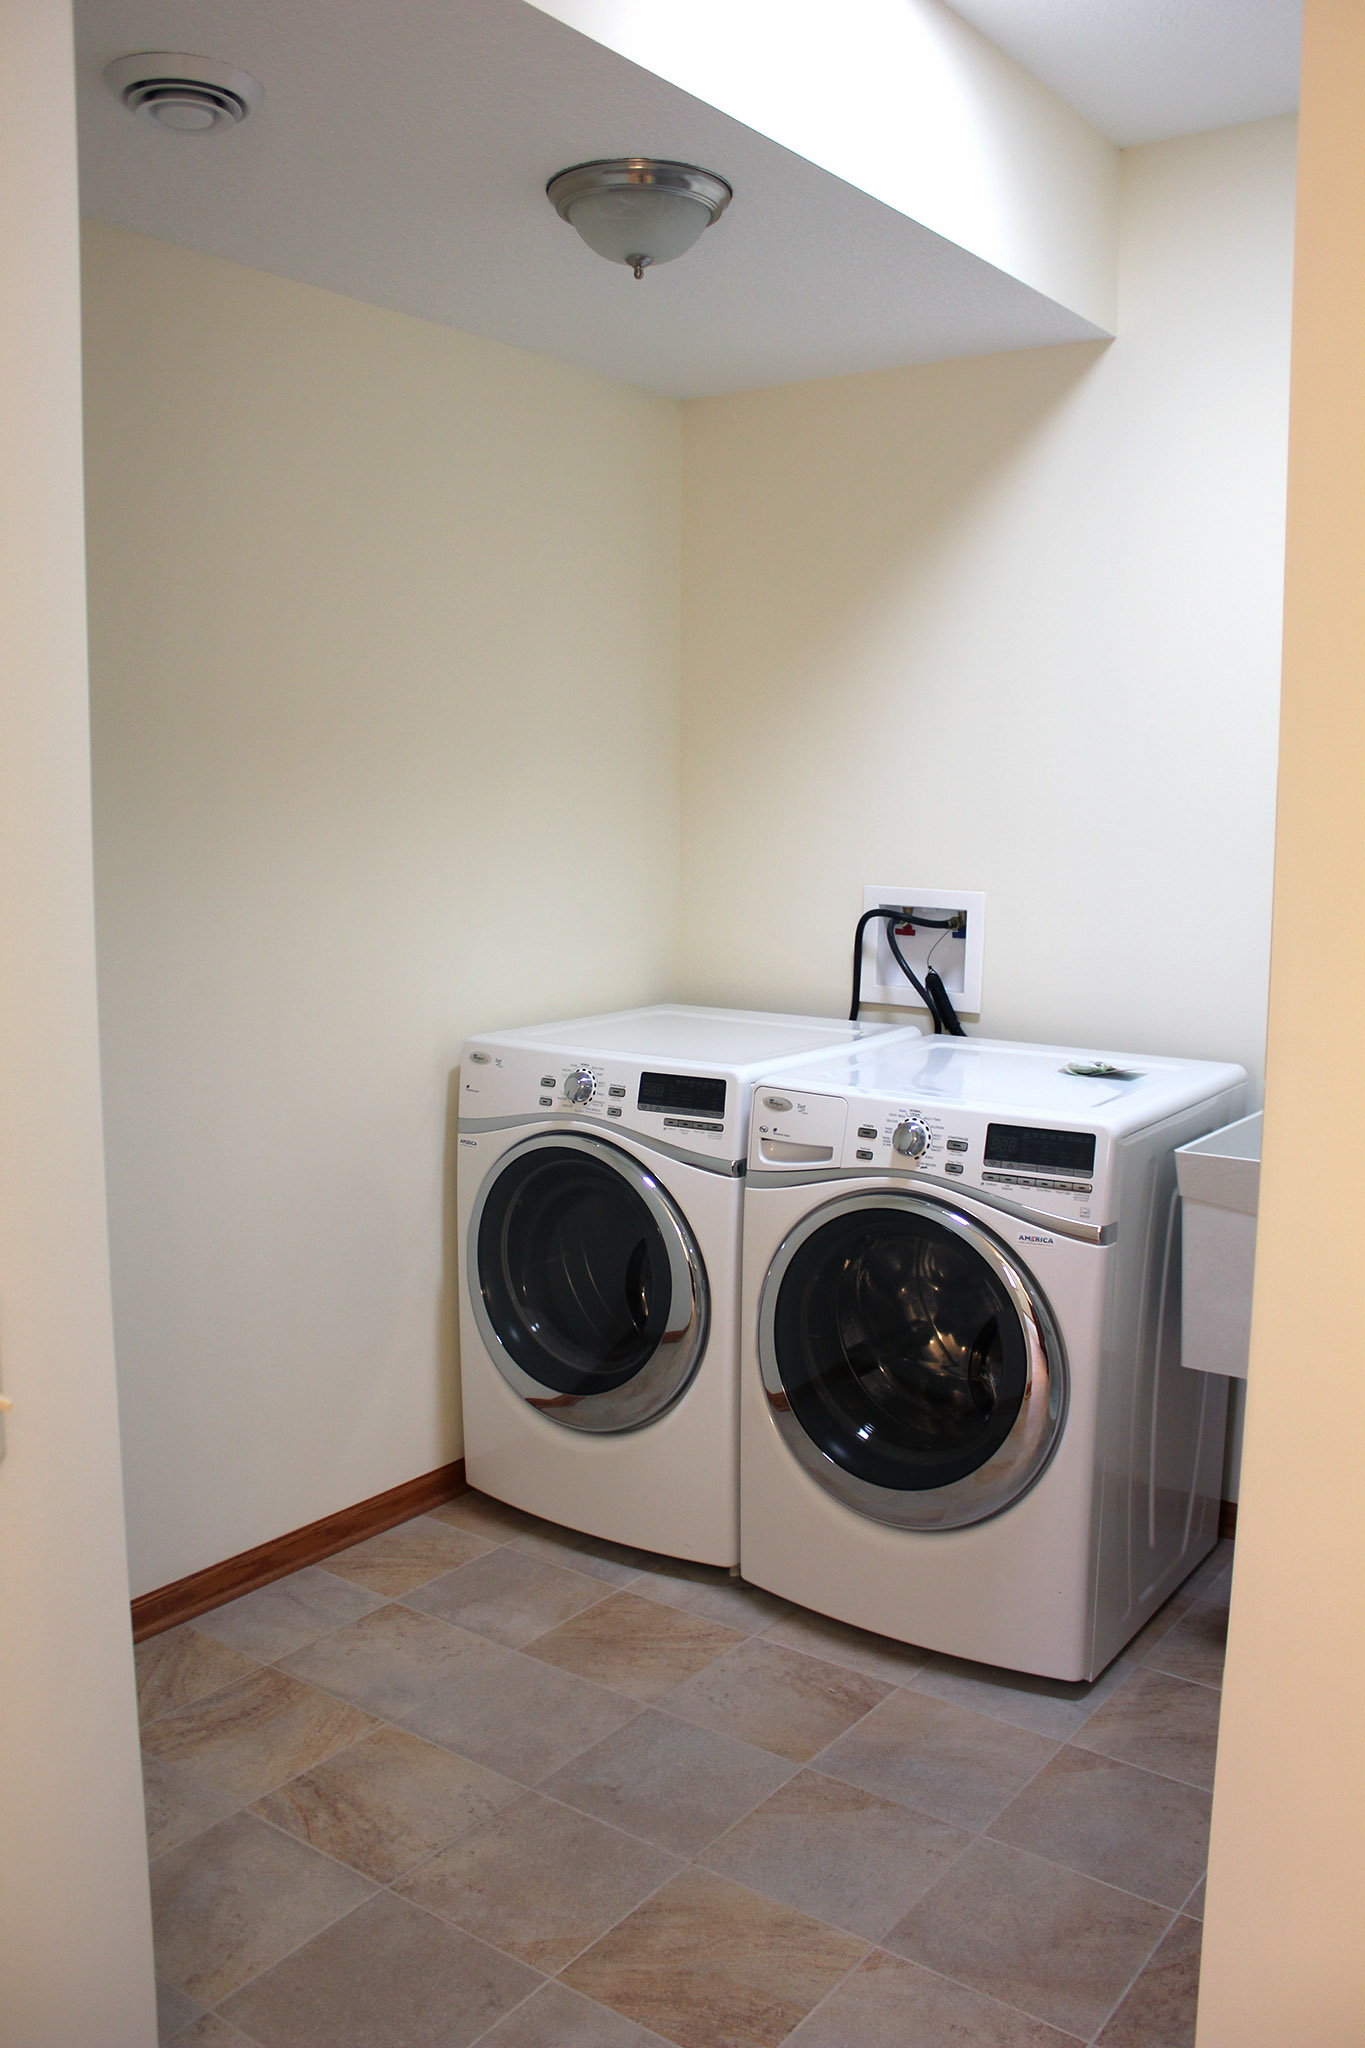 Laundry room with tub